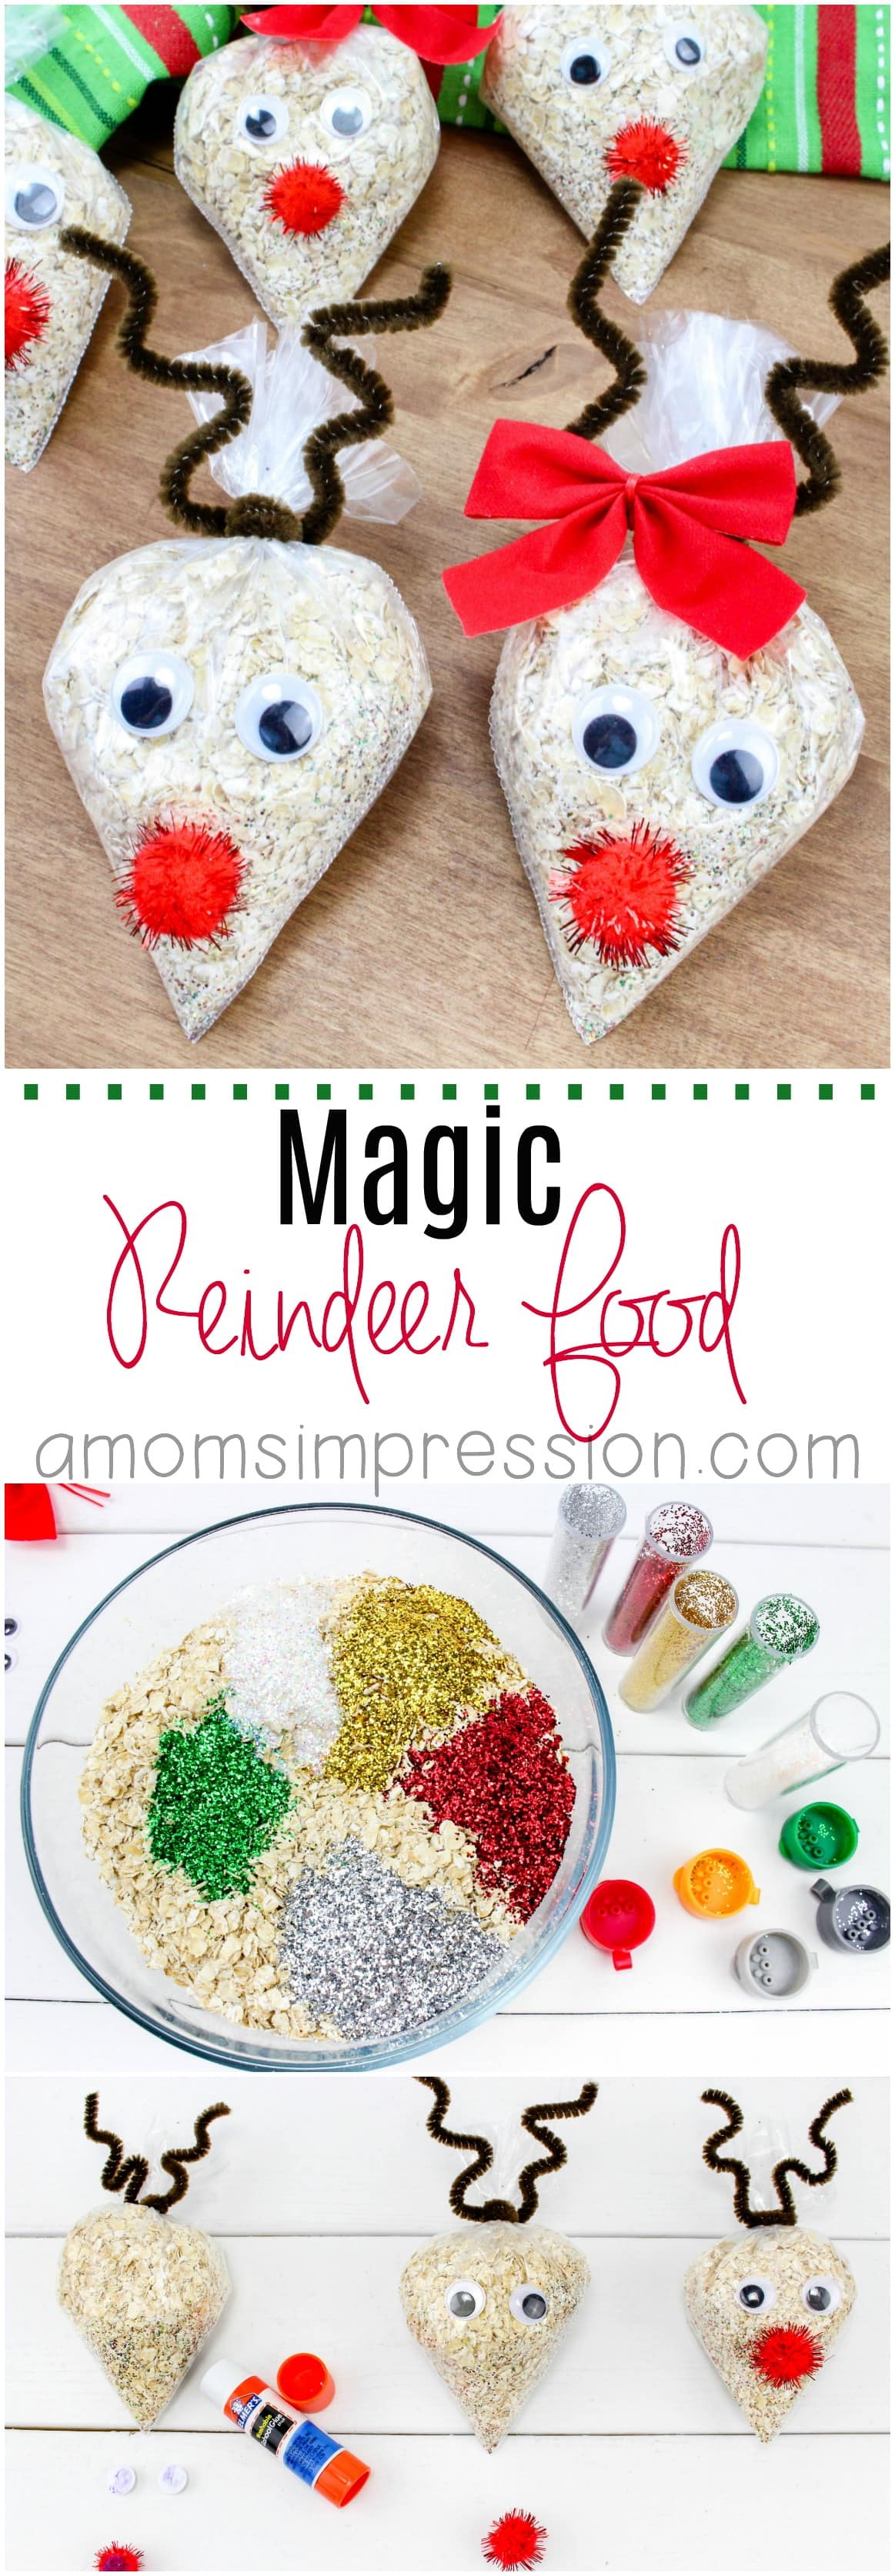 Santa is not the only one who deserves a little treat! This fun magic Reindeer Food craft recipe is fun to make for kids to spread out in the yard on Christmas Eve. #Christmas #ChristmasCrafts #ReindeerFood